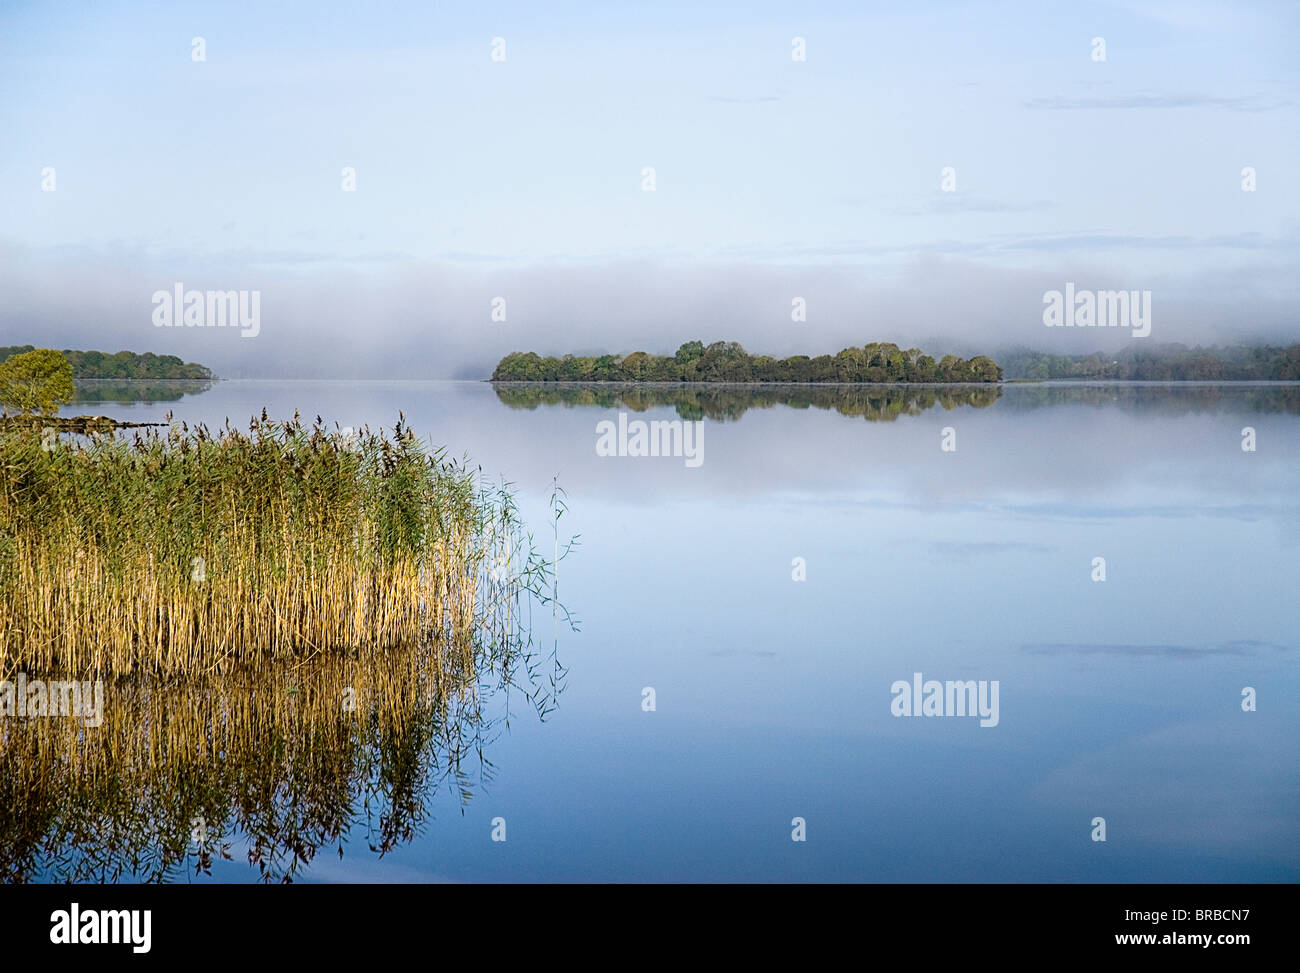 IRELAND County Cavan Lough Macnean - Stock Image